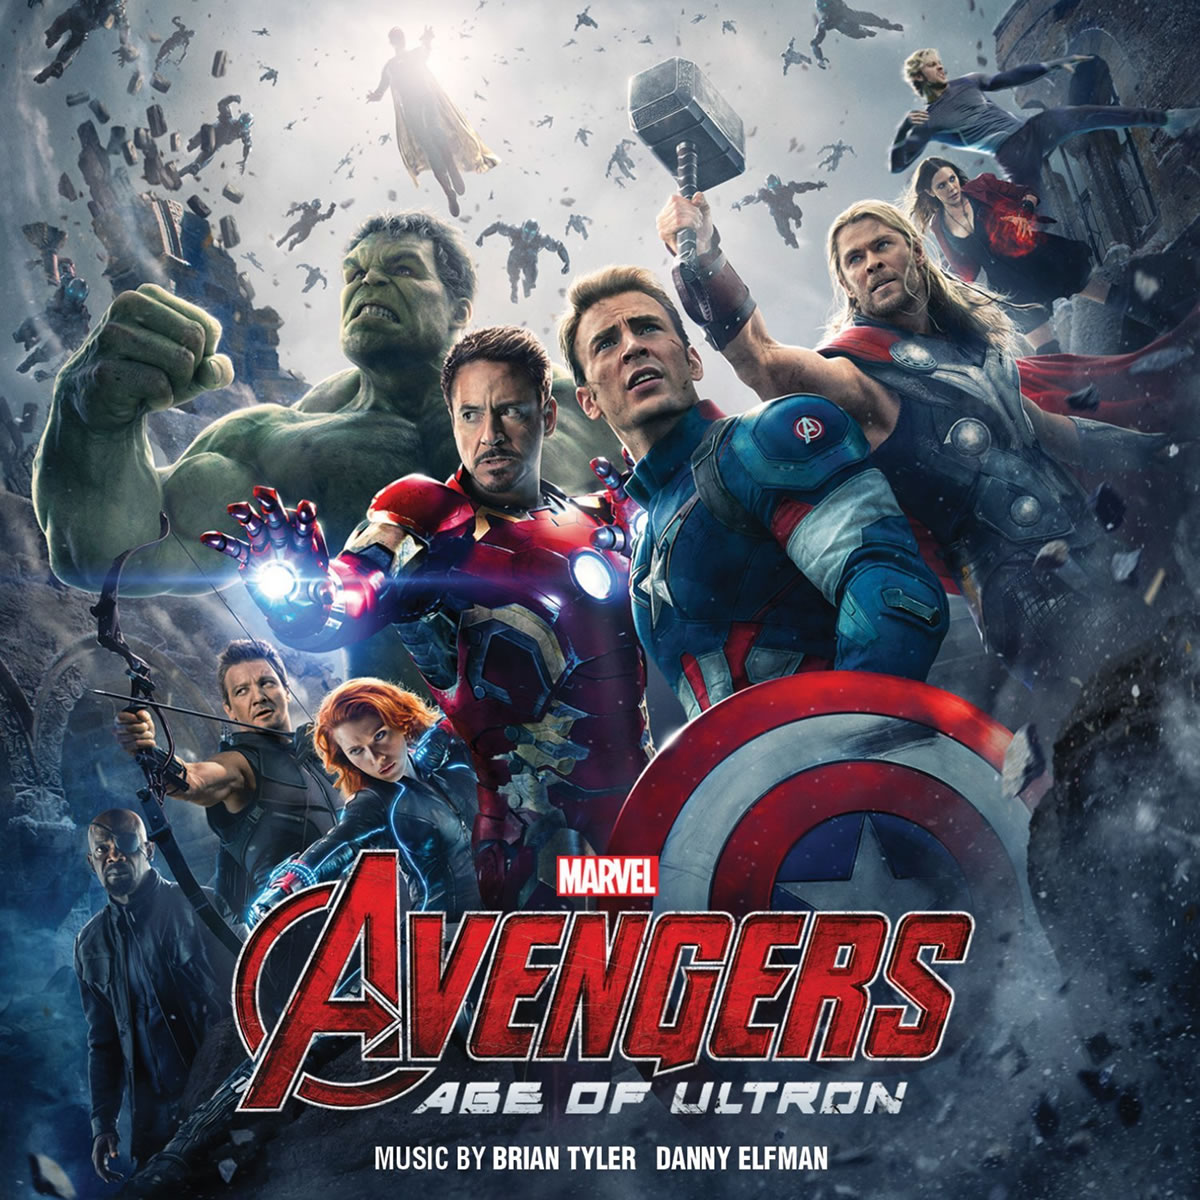 AVENGERS 2: AGE OF ULTRON - THE ORIGINAL MOTION PICTURE SOUNDTRACK (AUDIO CD)